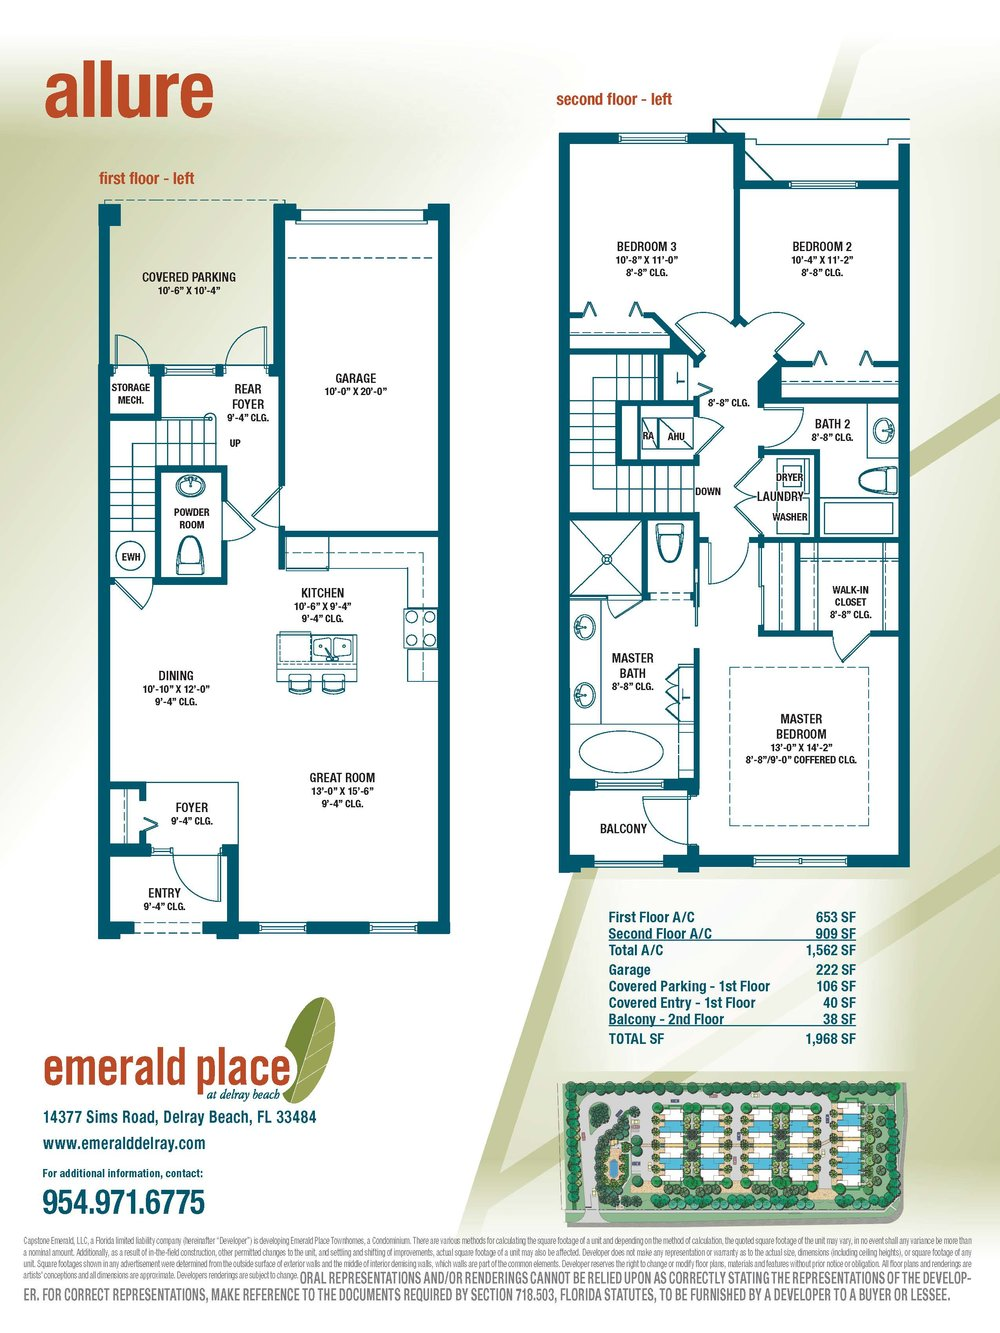 allure.floorplan.jpg